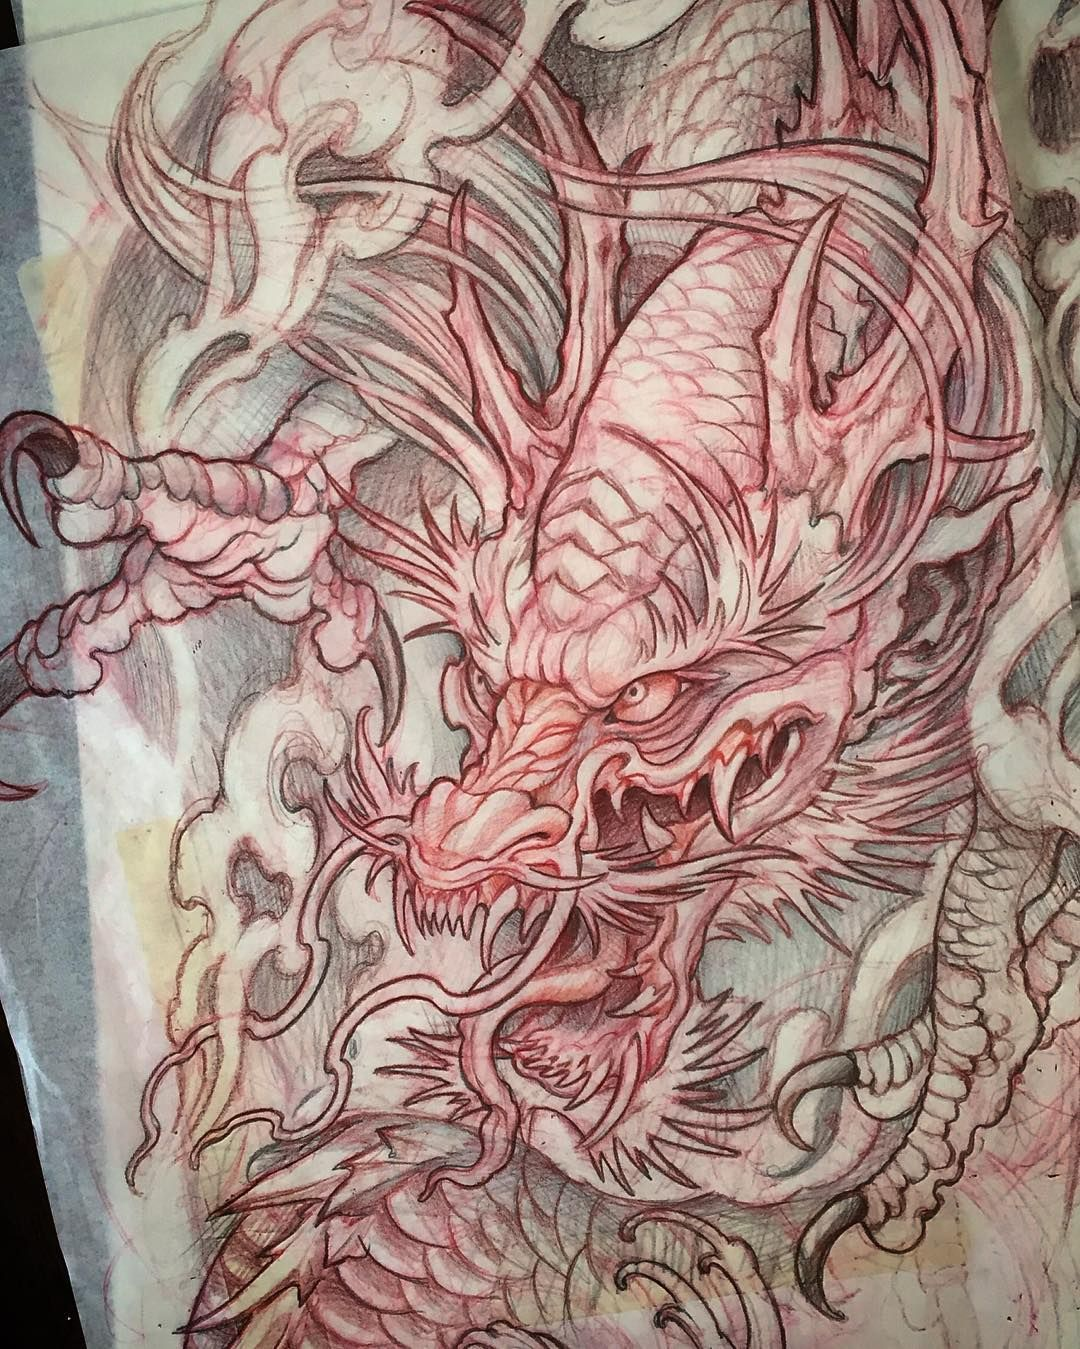 Sketch For A Japanese Sleeve: Dragon Sketch For An Upcoming Sleeve.. #dragonsketch